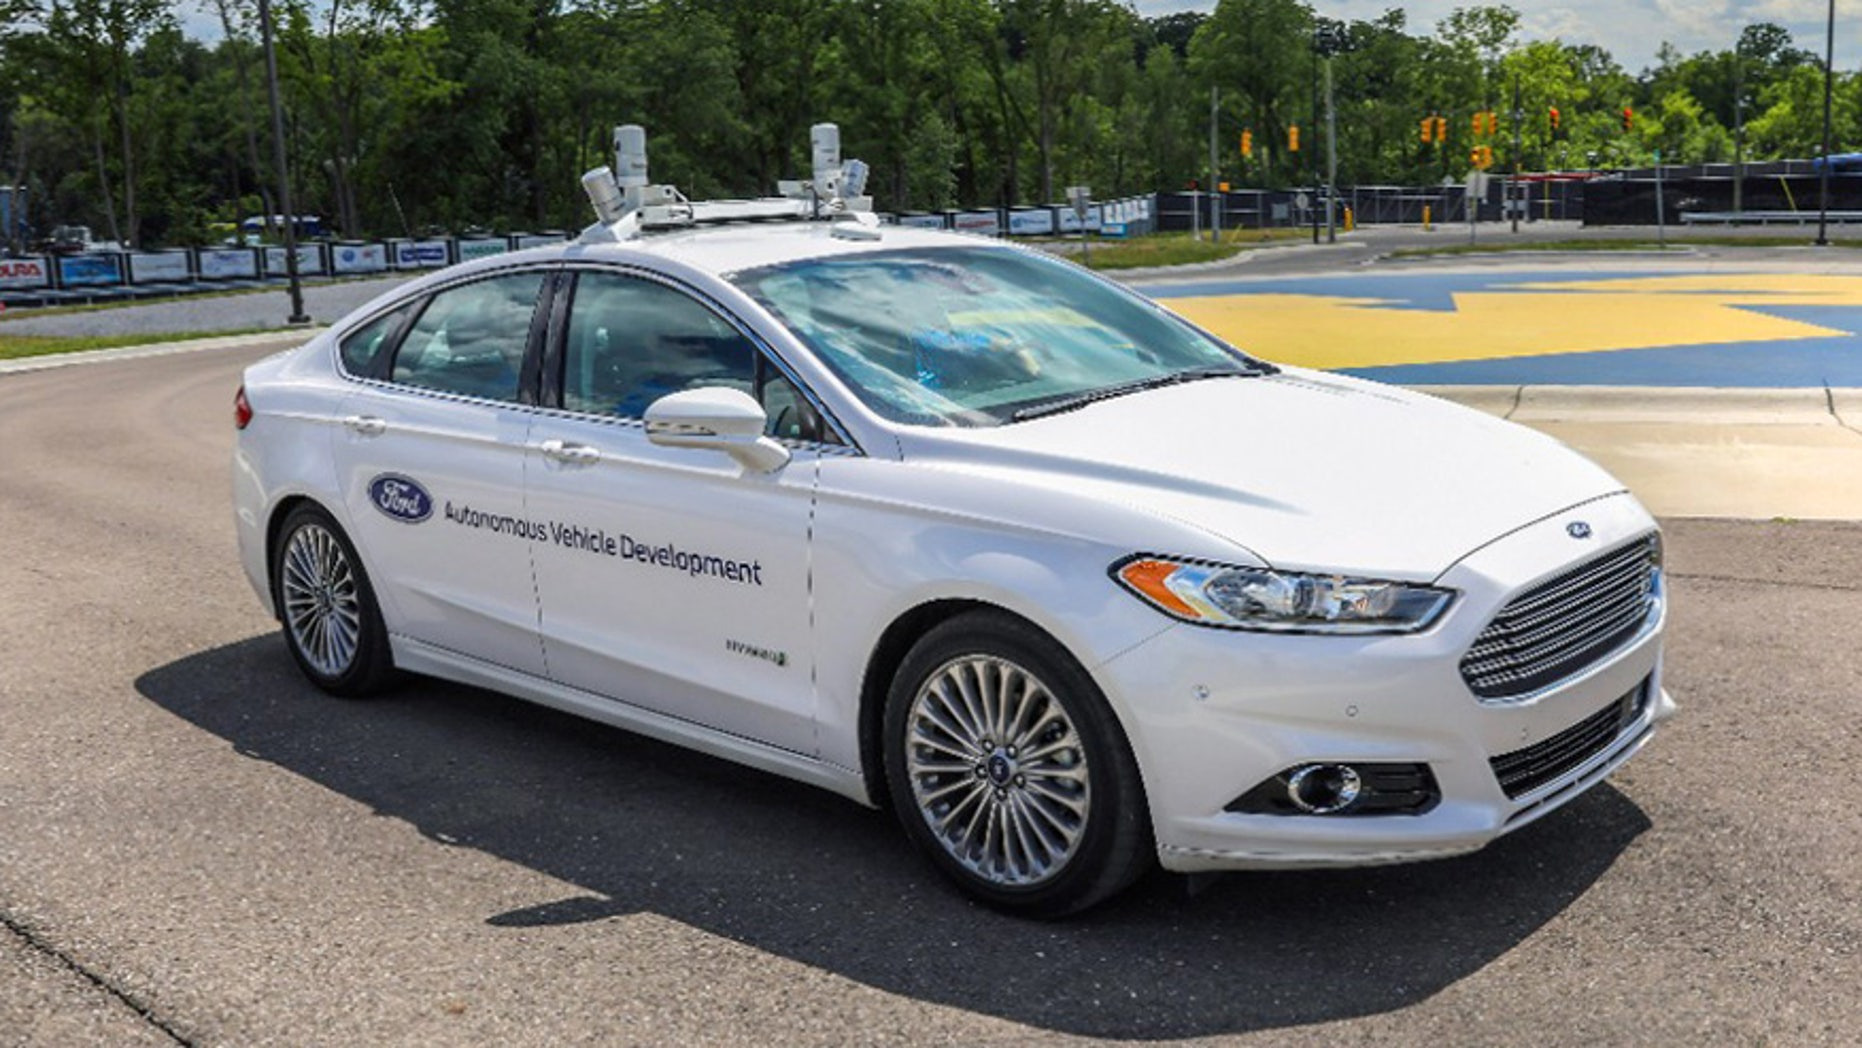 Autonomous Ford Fusion test vehicle